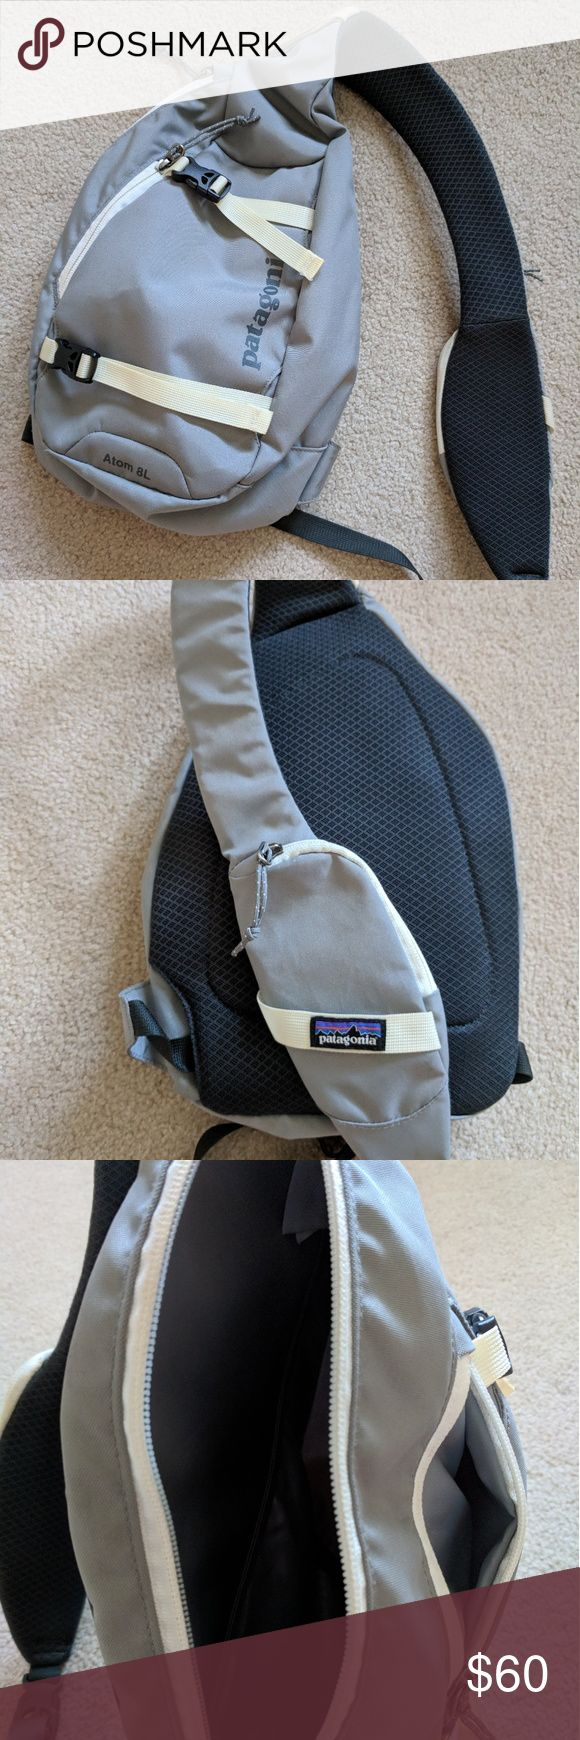 Patagonia Sling Bag Patagonia Atom 8L Sling Bag. Used a hand full of time, in great condition! Patagonia Bags Backpacks